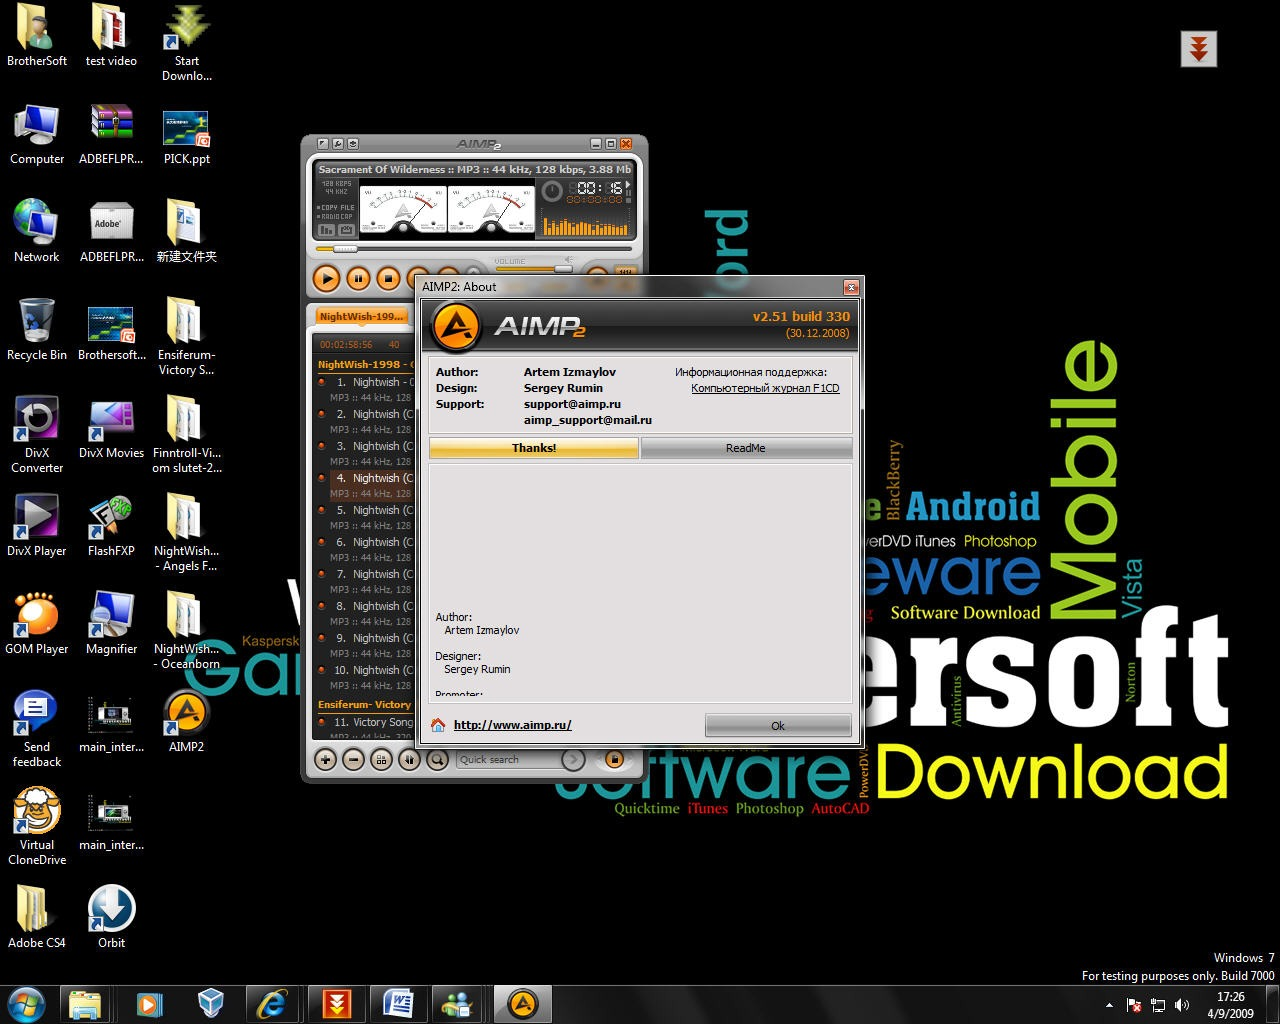 Sol exe for Windows 7